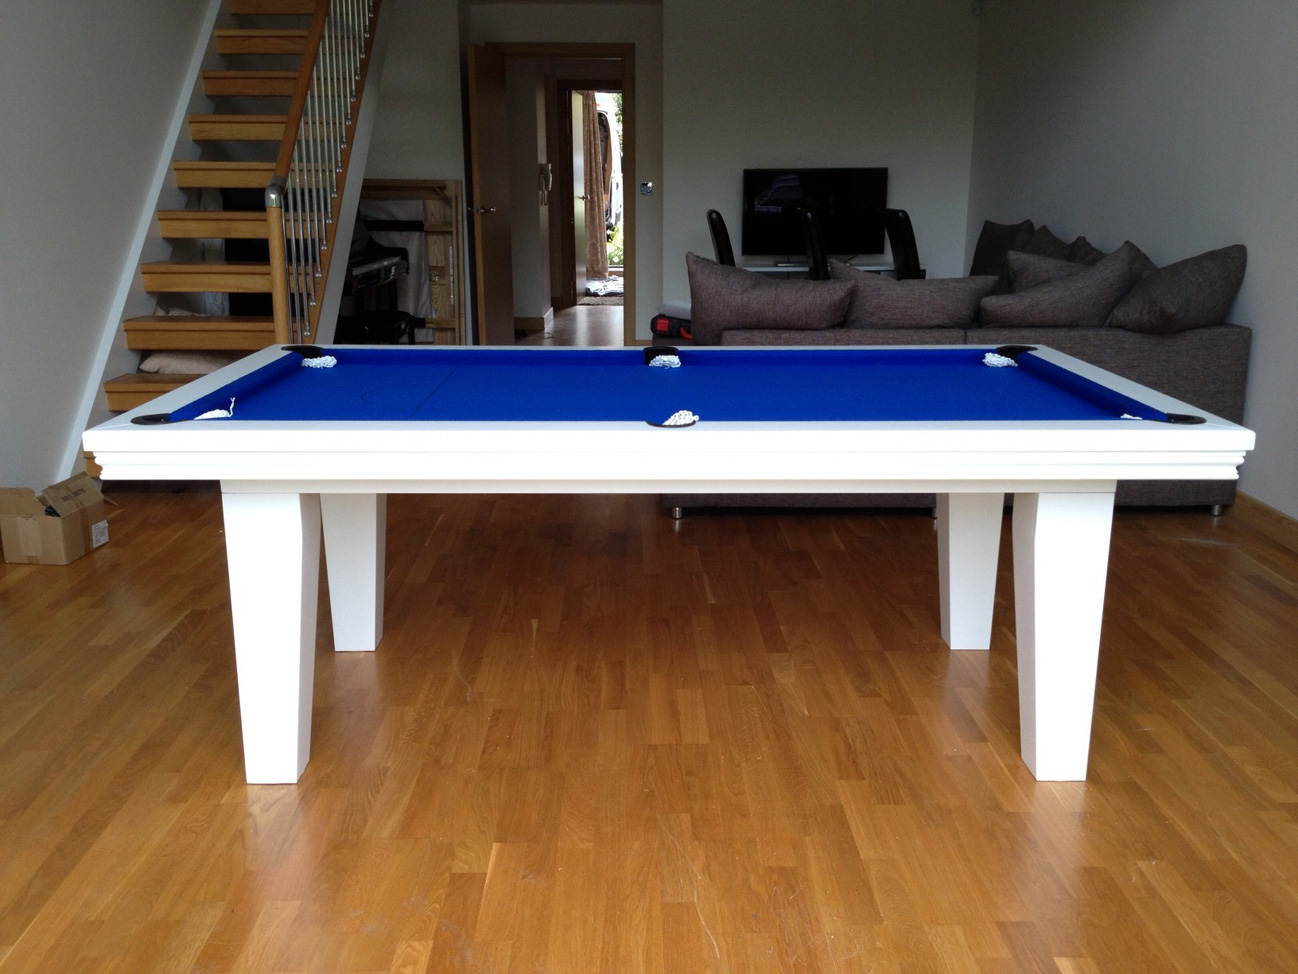 Pool Dining Table In White Blue Snooker Pool Tables - Milano pool table